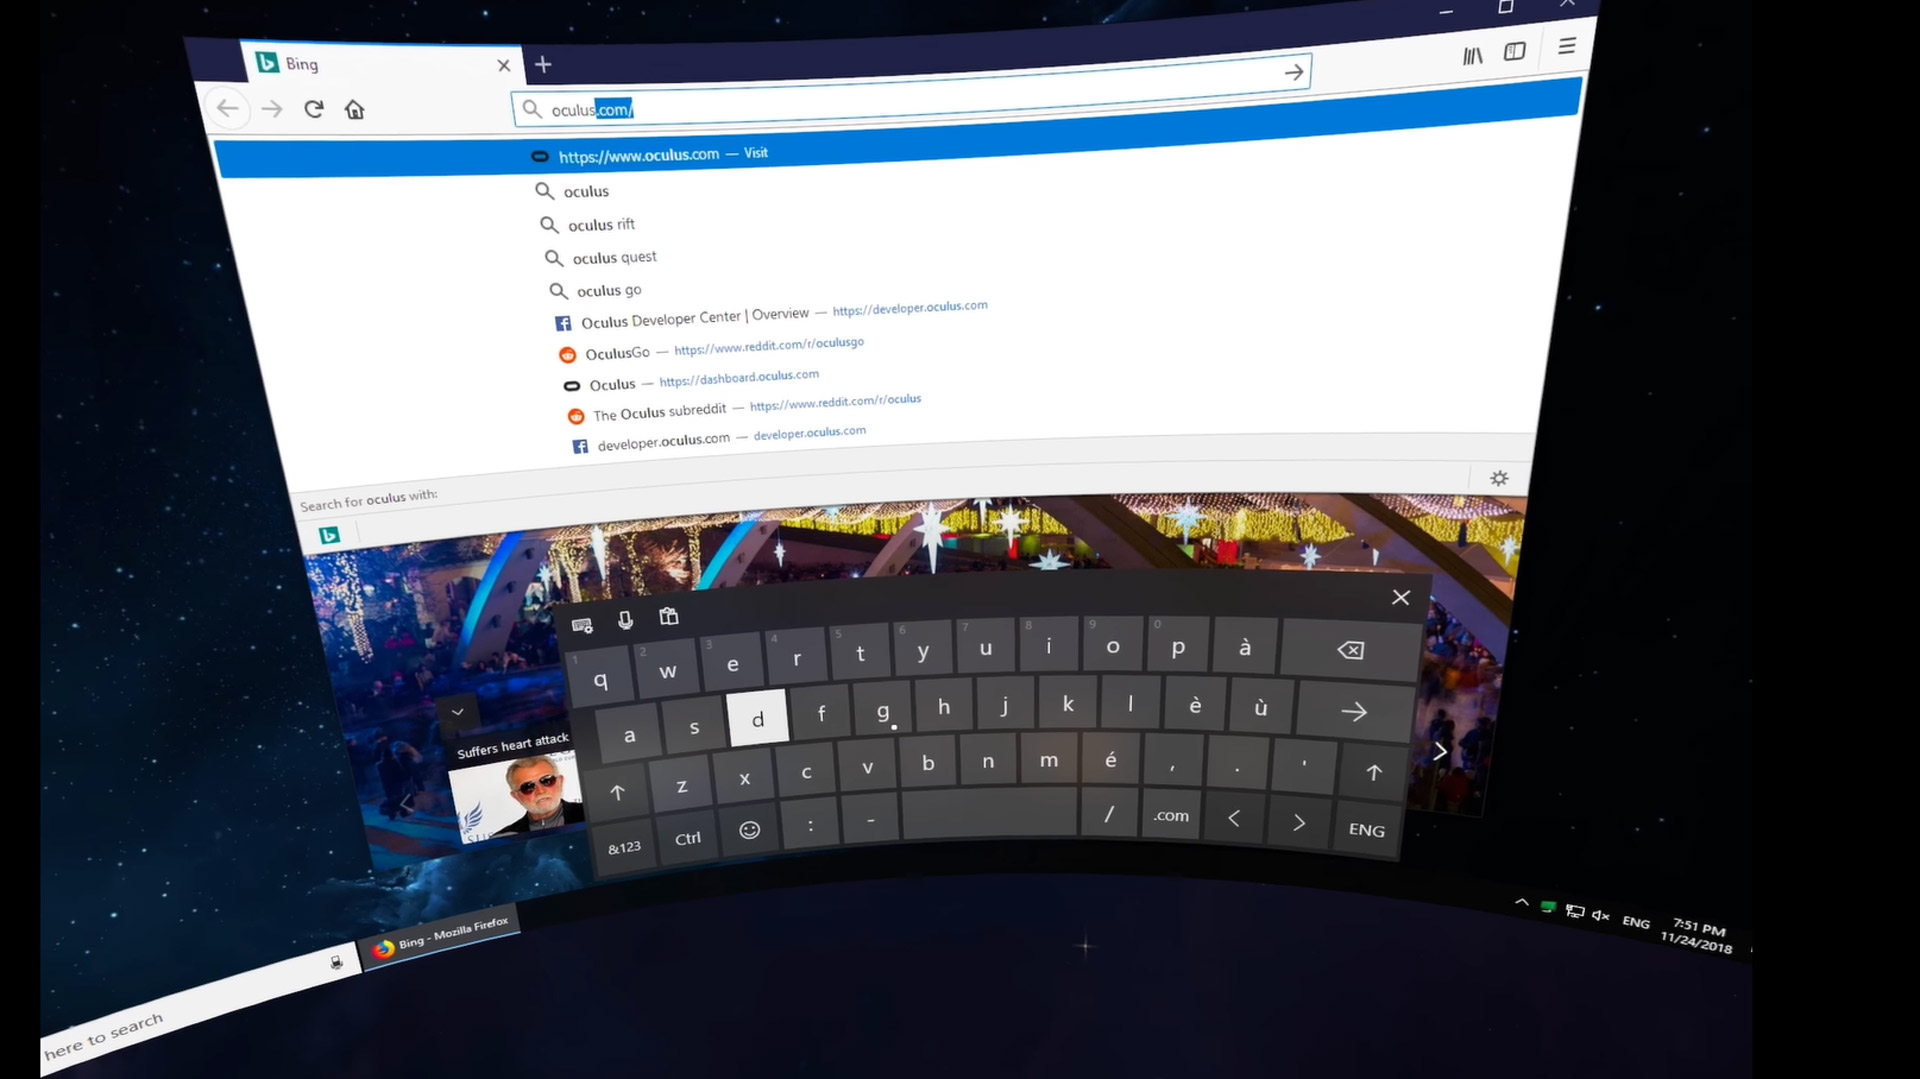 'Virtual Desktop' is Finally Coming to Oculus Go & Gear VR This Week, Oculus Quest Next Year